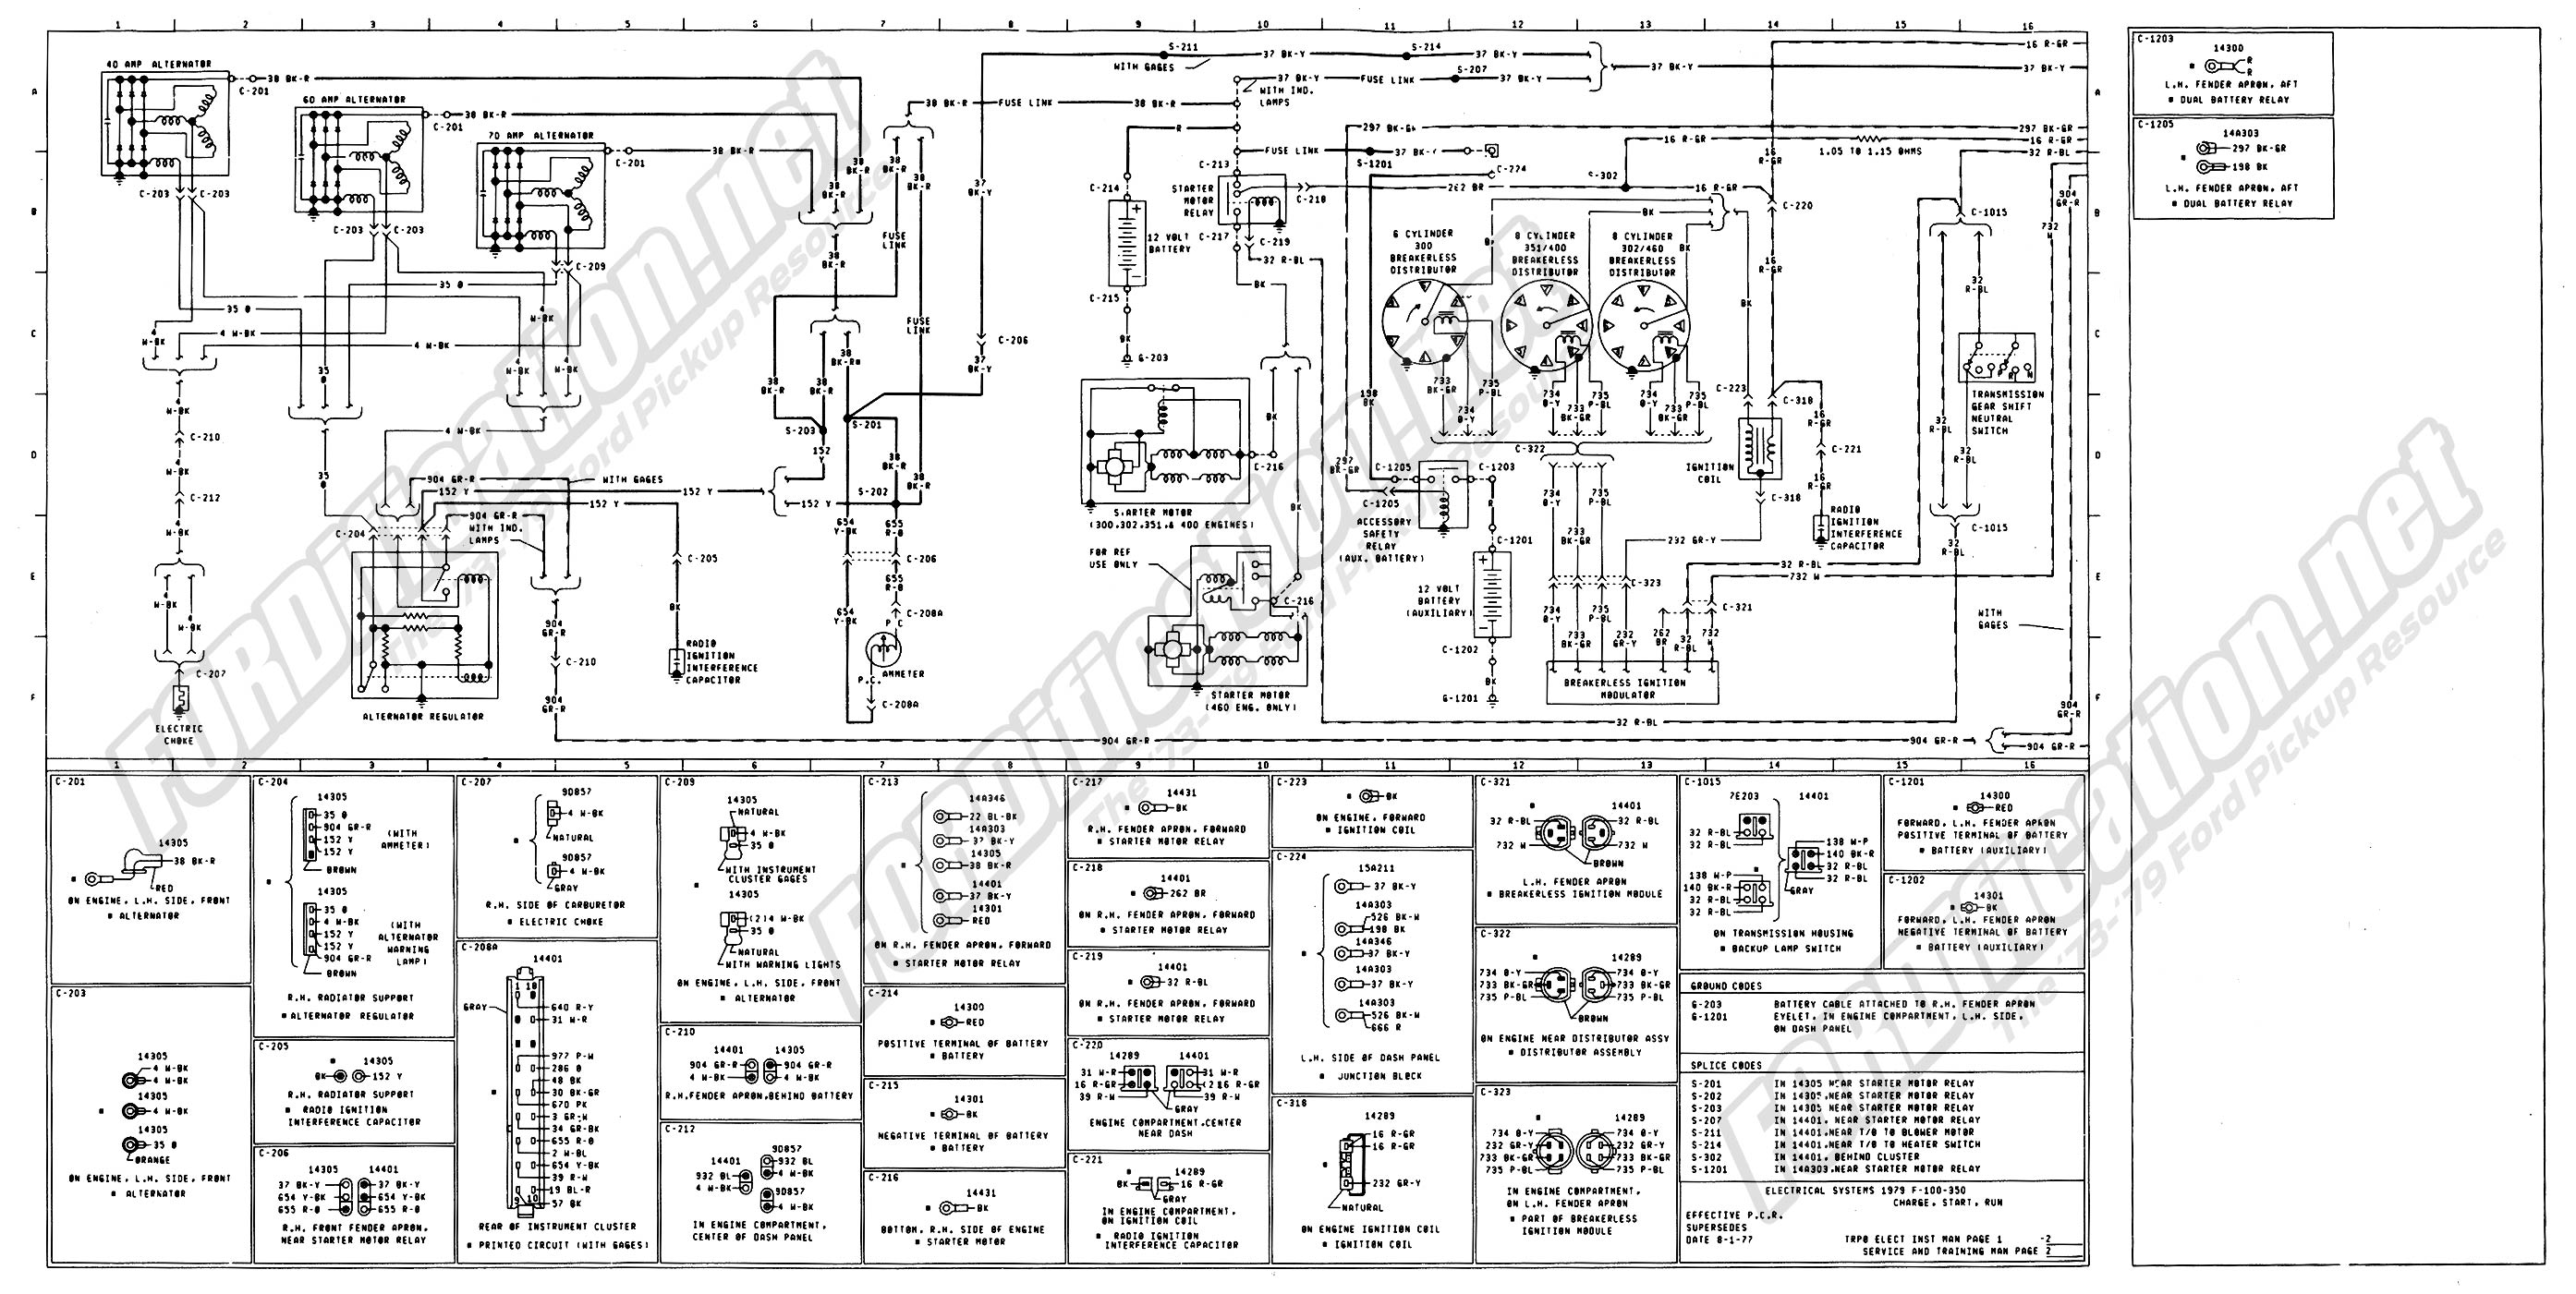 wiring_79master_2of9 1973 1979 ford truck wiring diagrams & schematics fordification net 1999 F150 Radio Wiring Diagram at panicattacktreatment.co